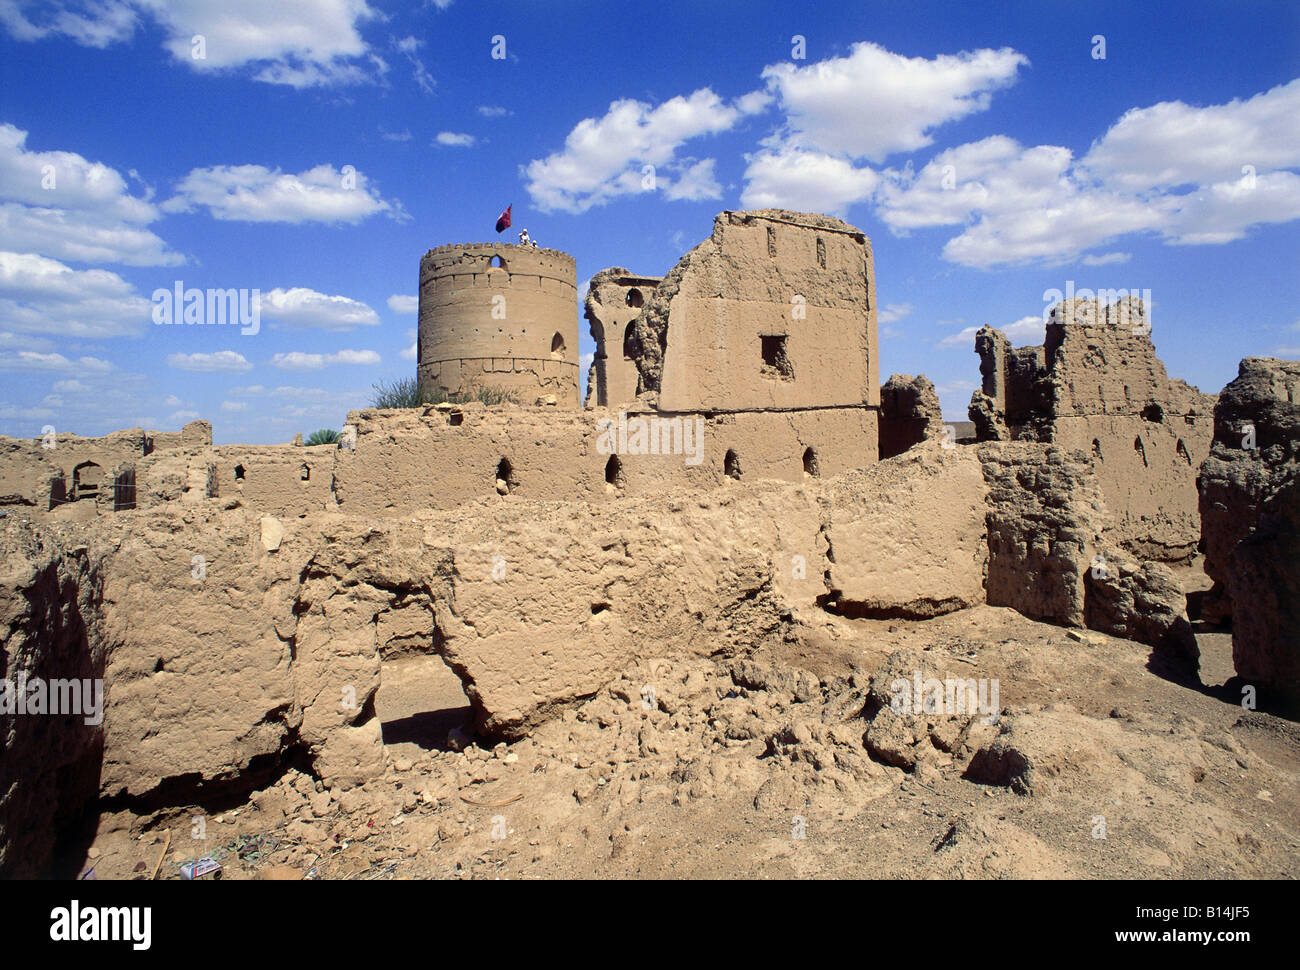 geography / travel, Oman, Manah, buildings, caravansarai, ruins, Additional-Rights-Clearance-Info-Not-Available Stock Photo